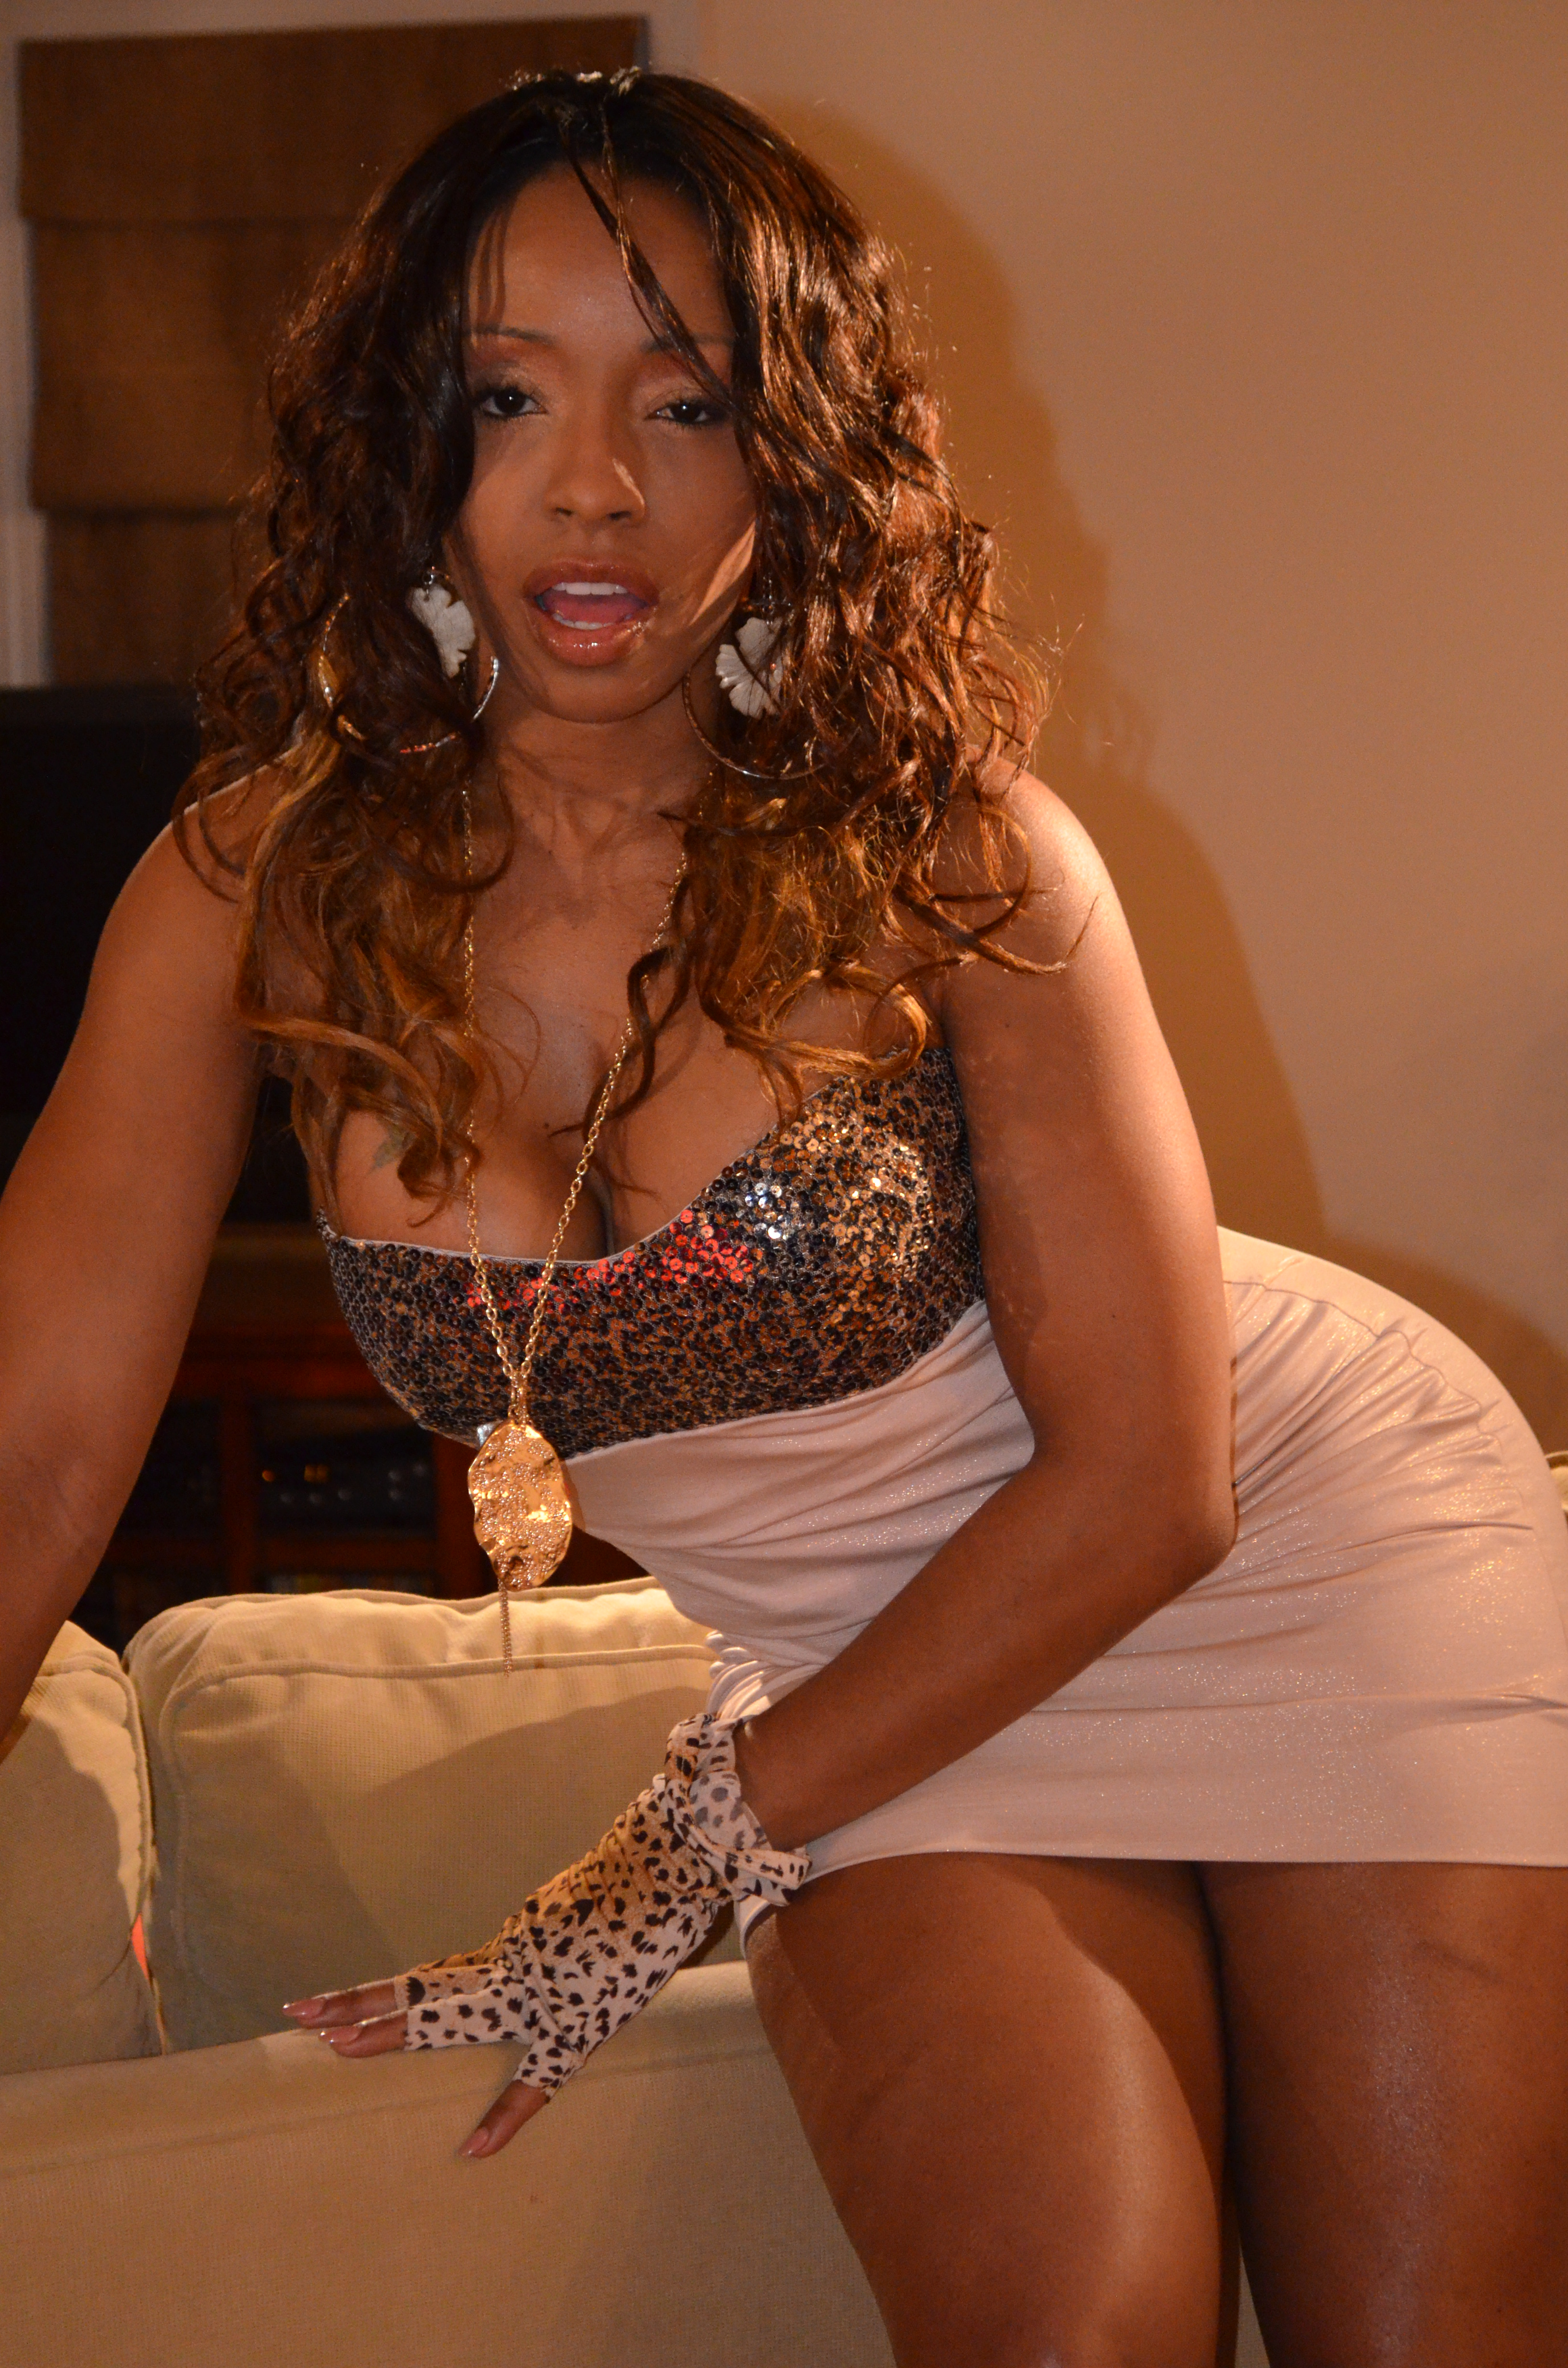 Swingers clubs indianapolis